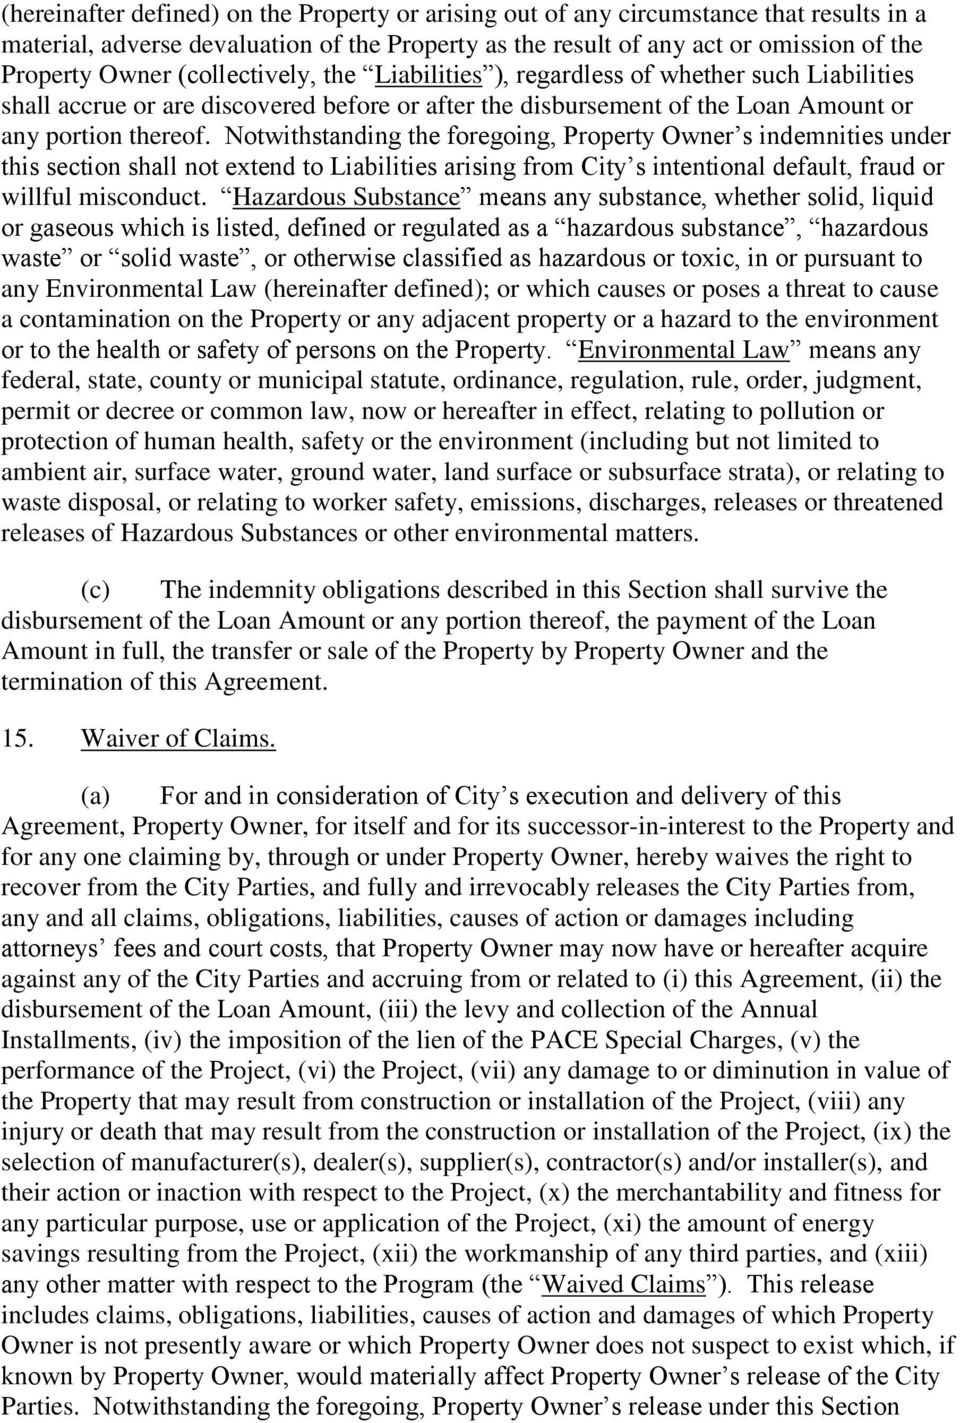 Notwithstanding the foregoing, Property Owner s indemnities under this section shall not extend to Liabilities arising from City s intentional default, fraud or willful misconduct.